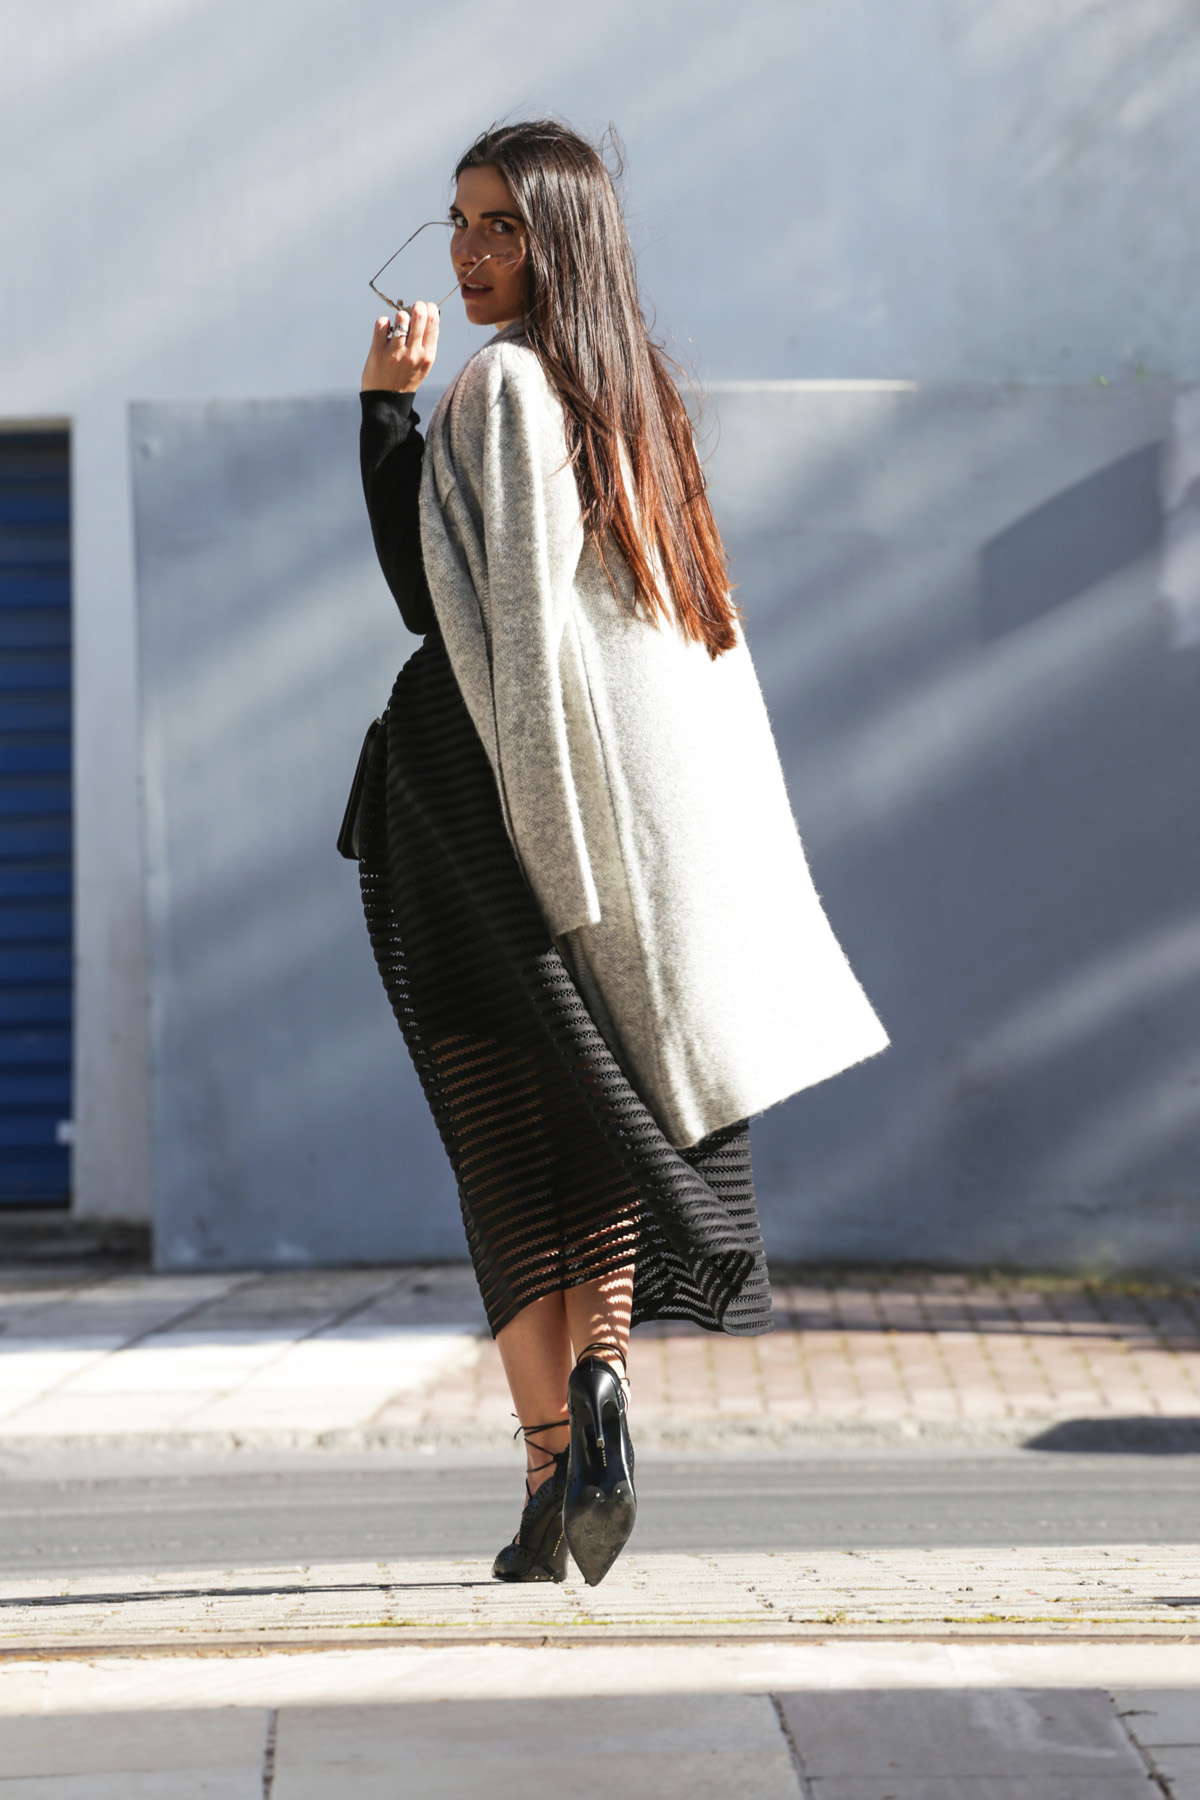 zini striped full skirt